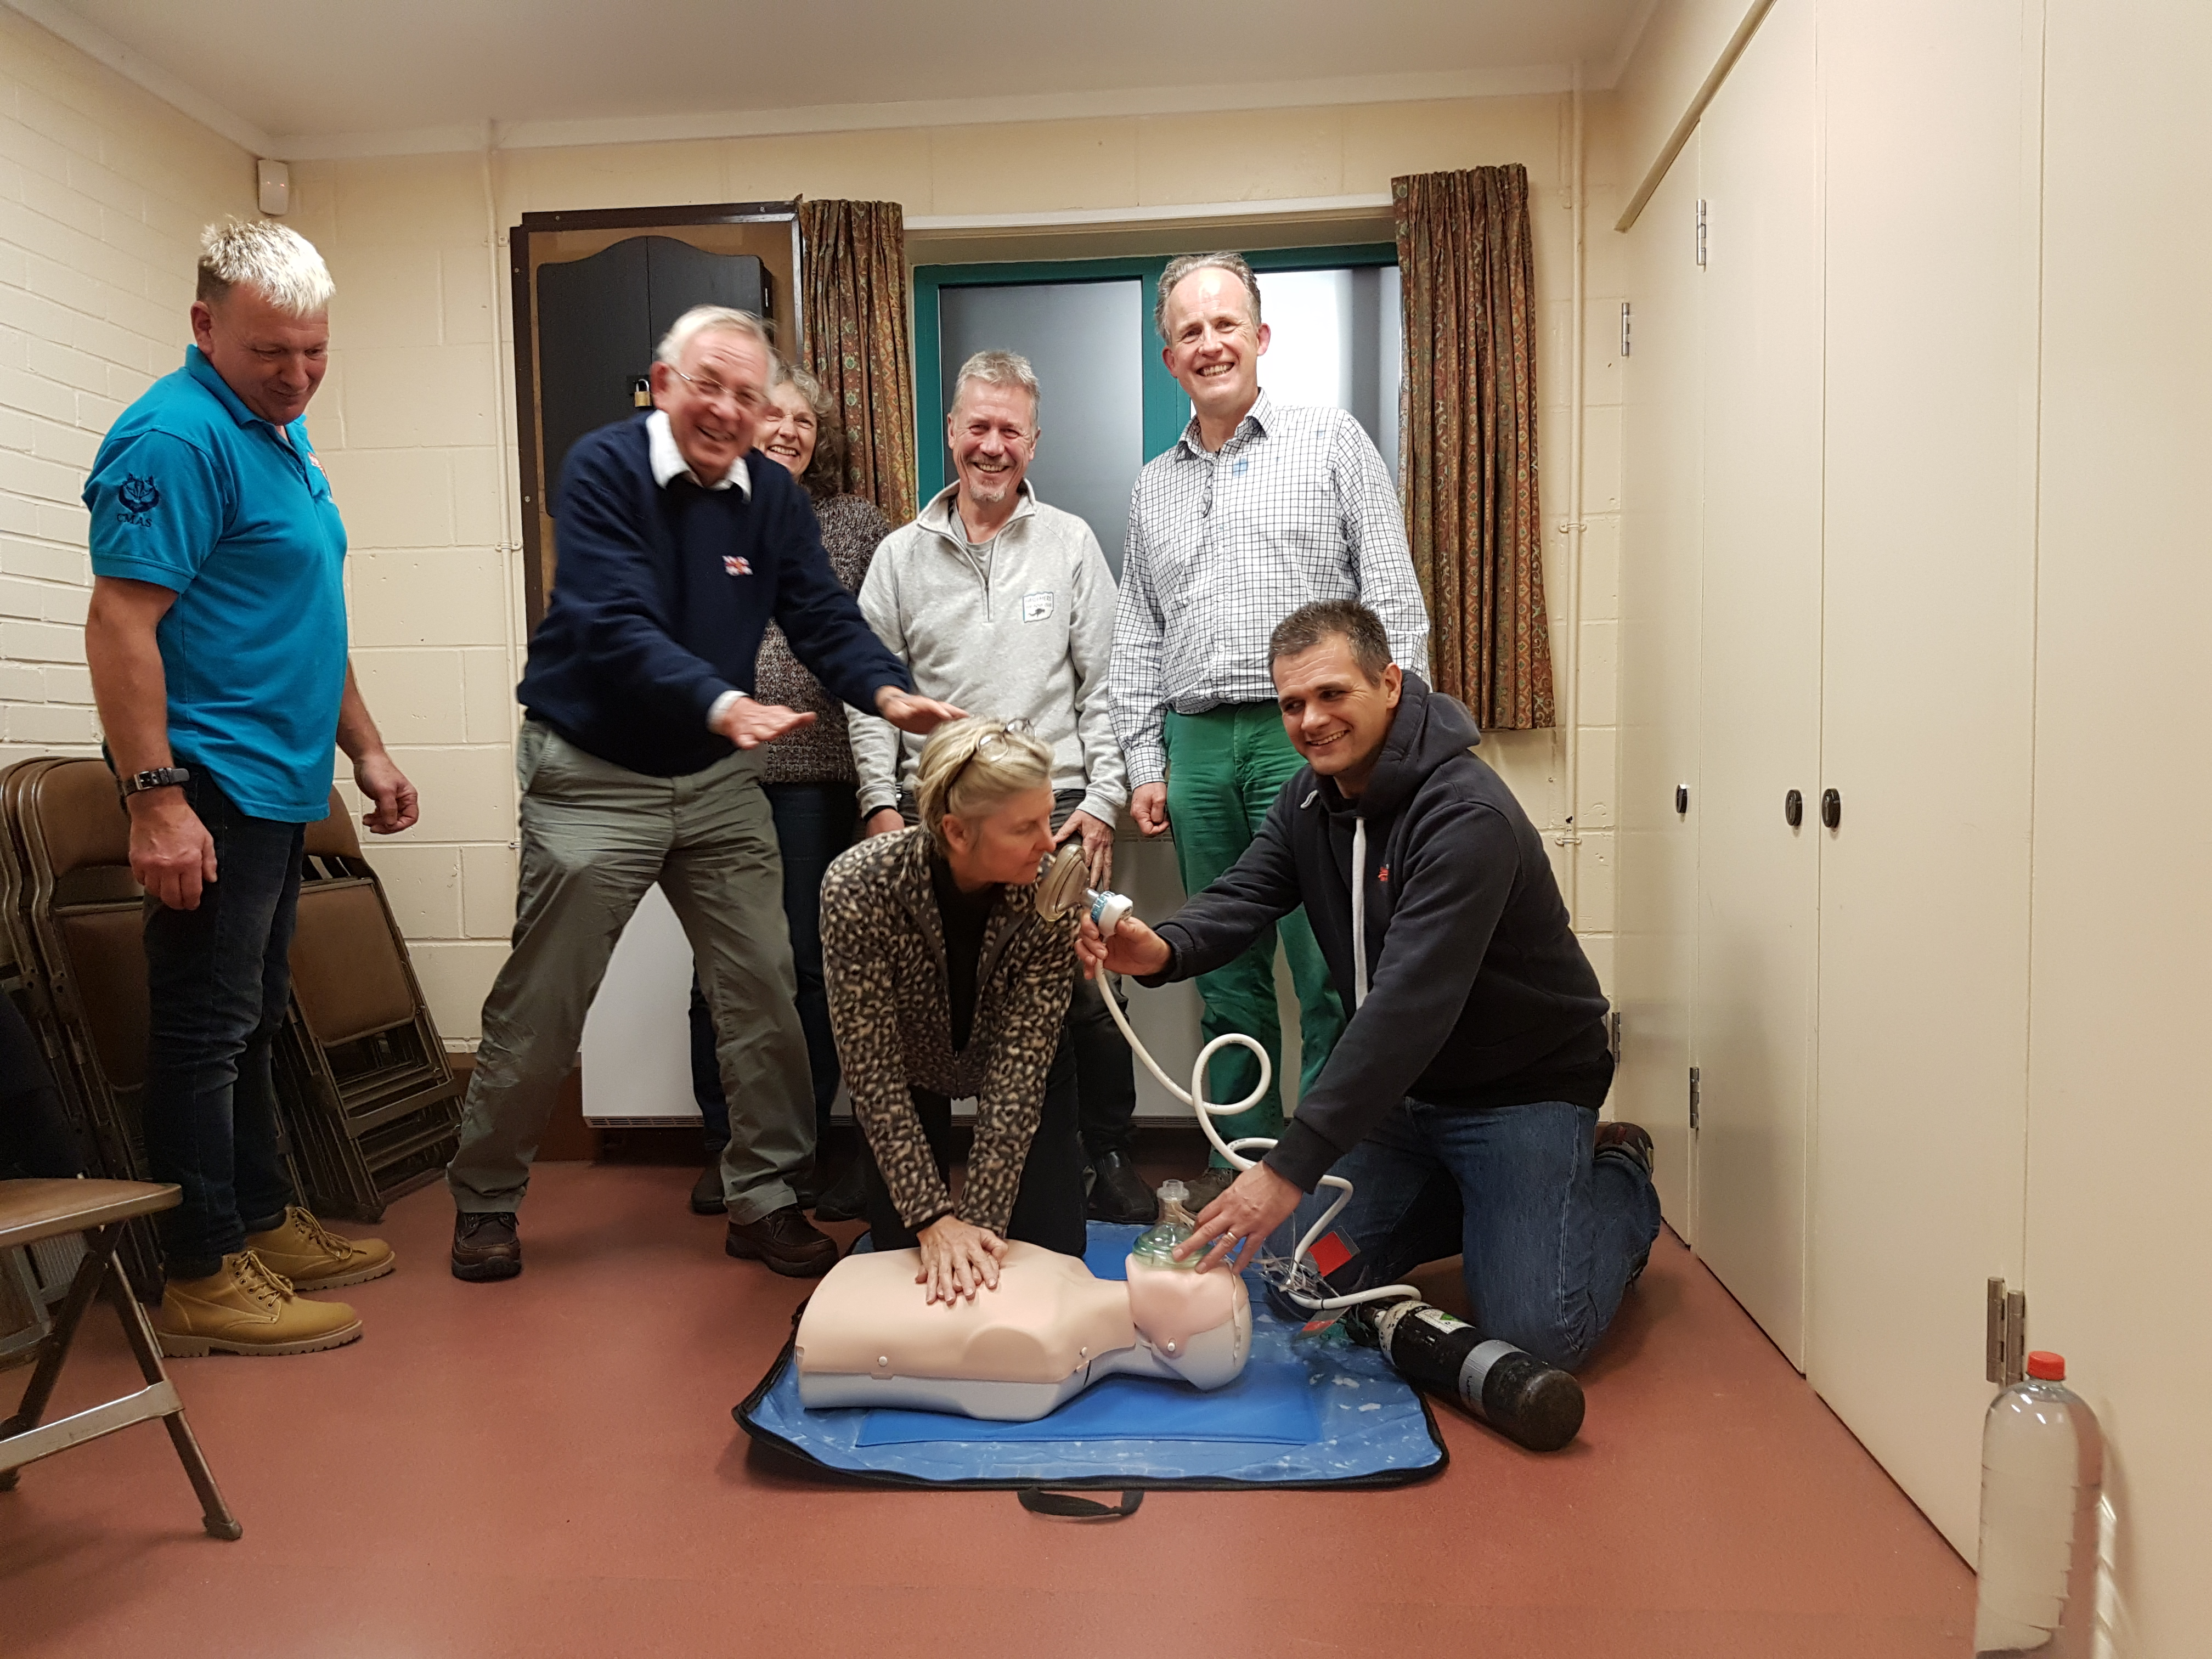 Oxygen enriched CPR demonstration - Oxygen Admin and First Aid course Nov 2018